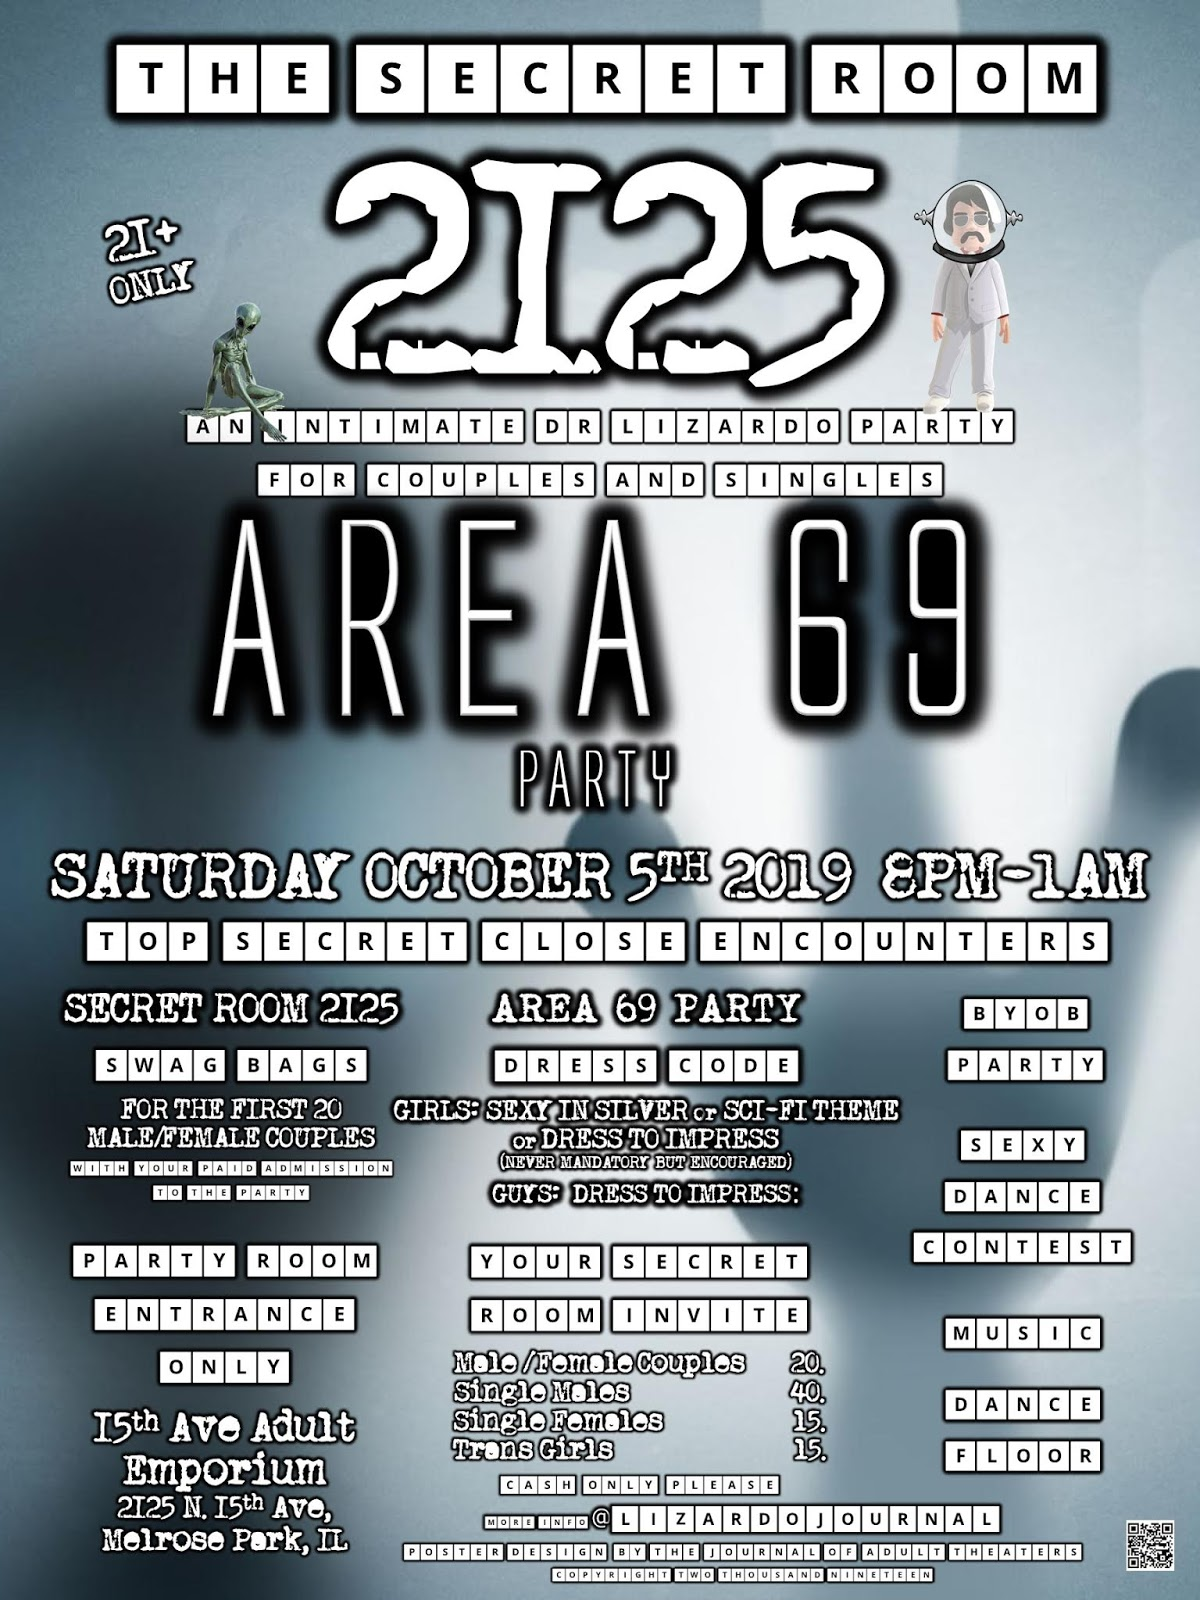 Secret Room 2125: Area 69 Party at 15th Ave.Adult Theater Party Room in Chicago...